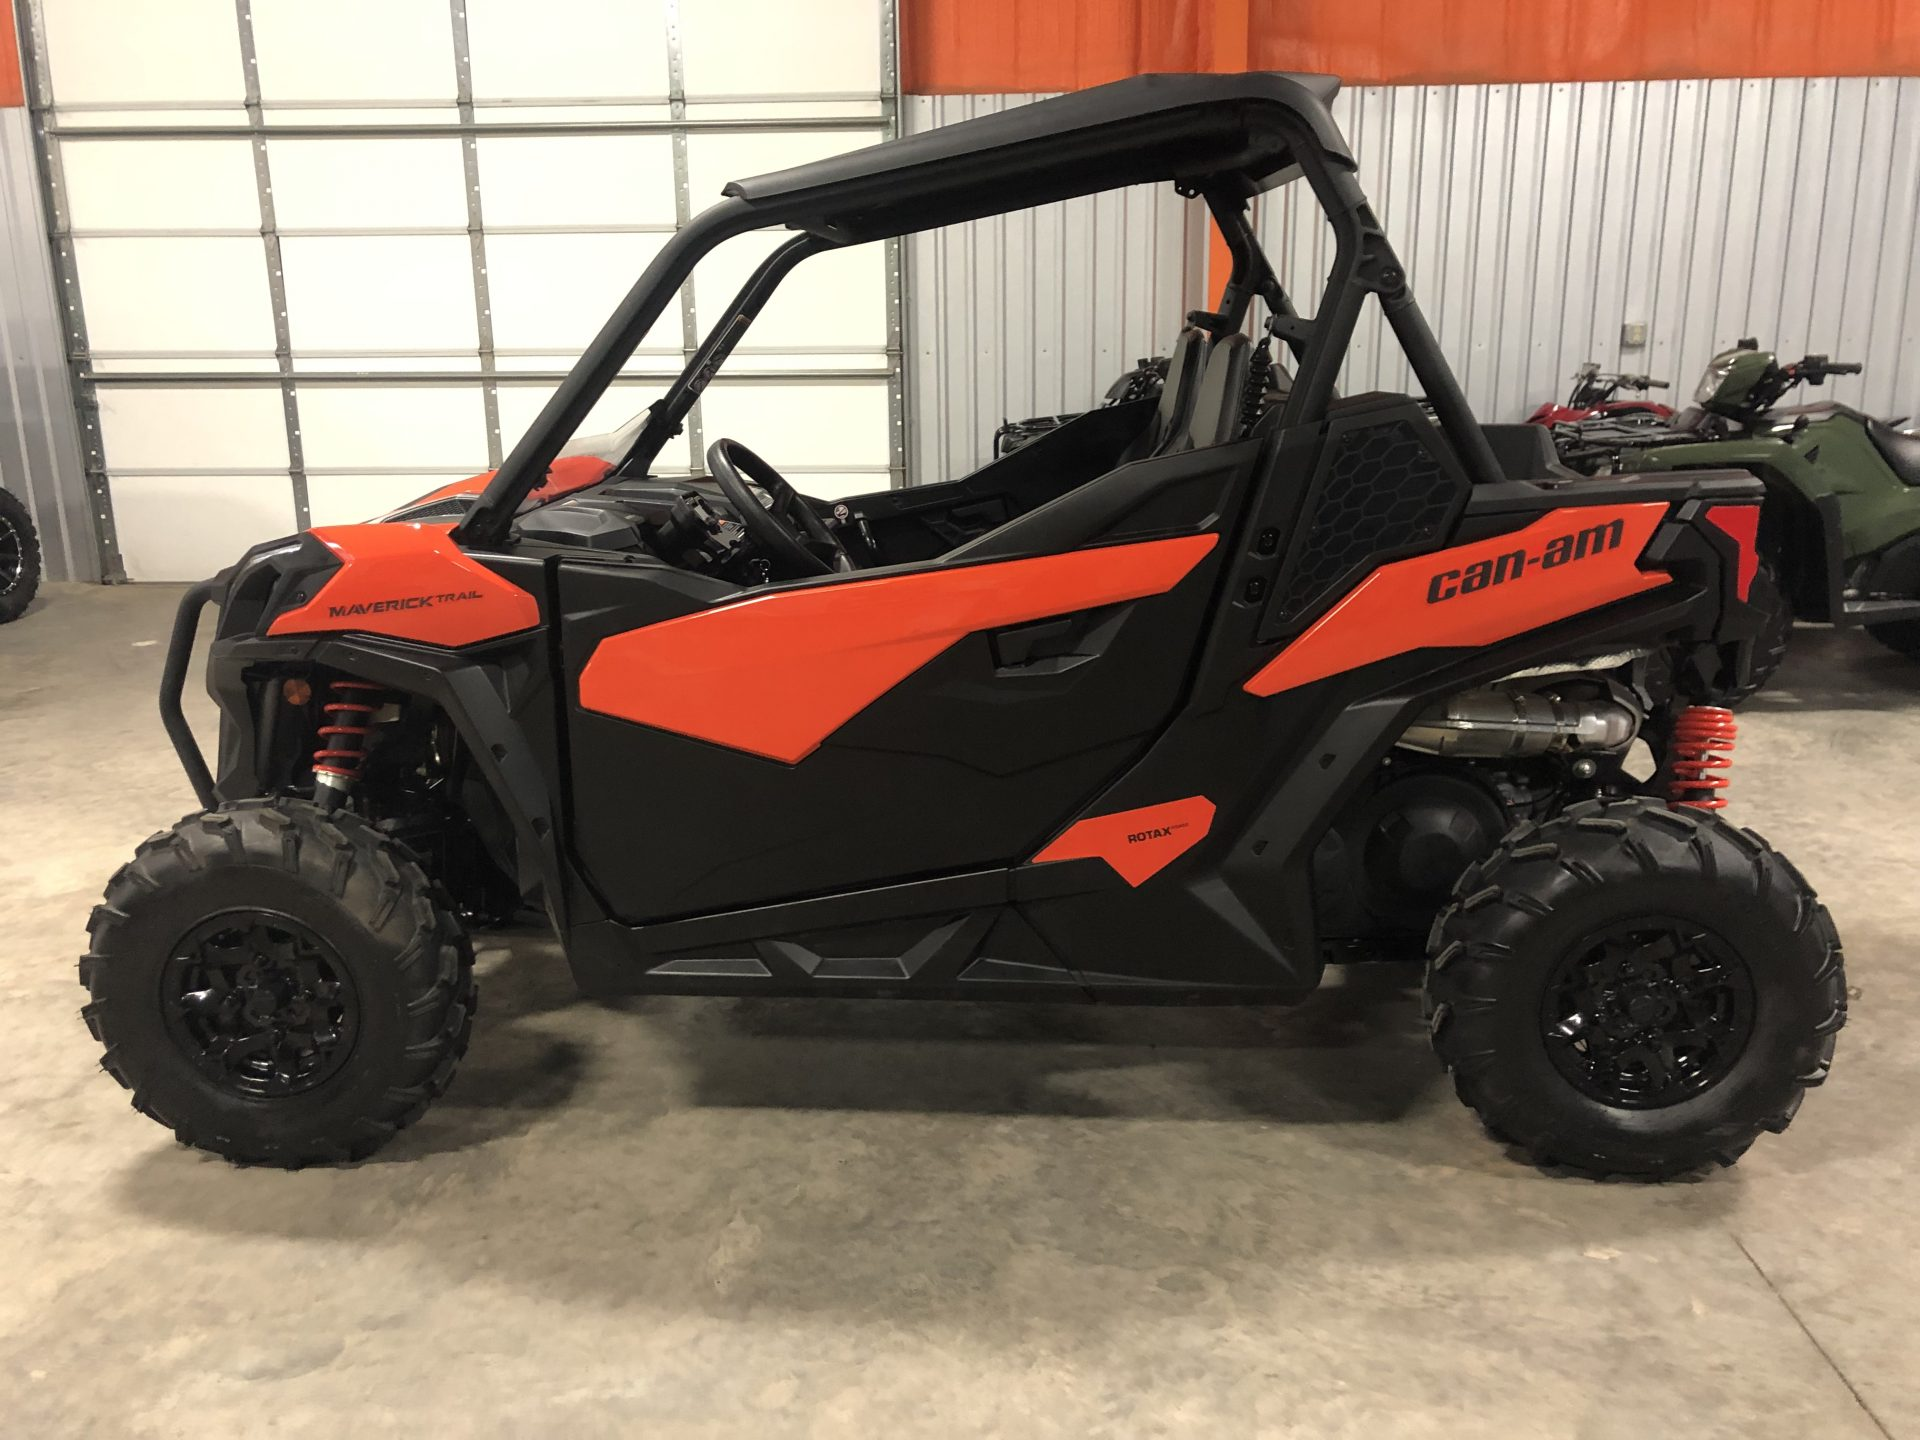 2018 Can-am Maverick 1000 Trail Ed Image